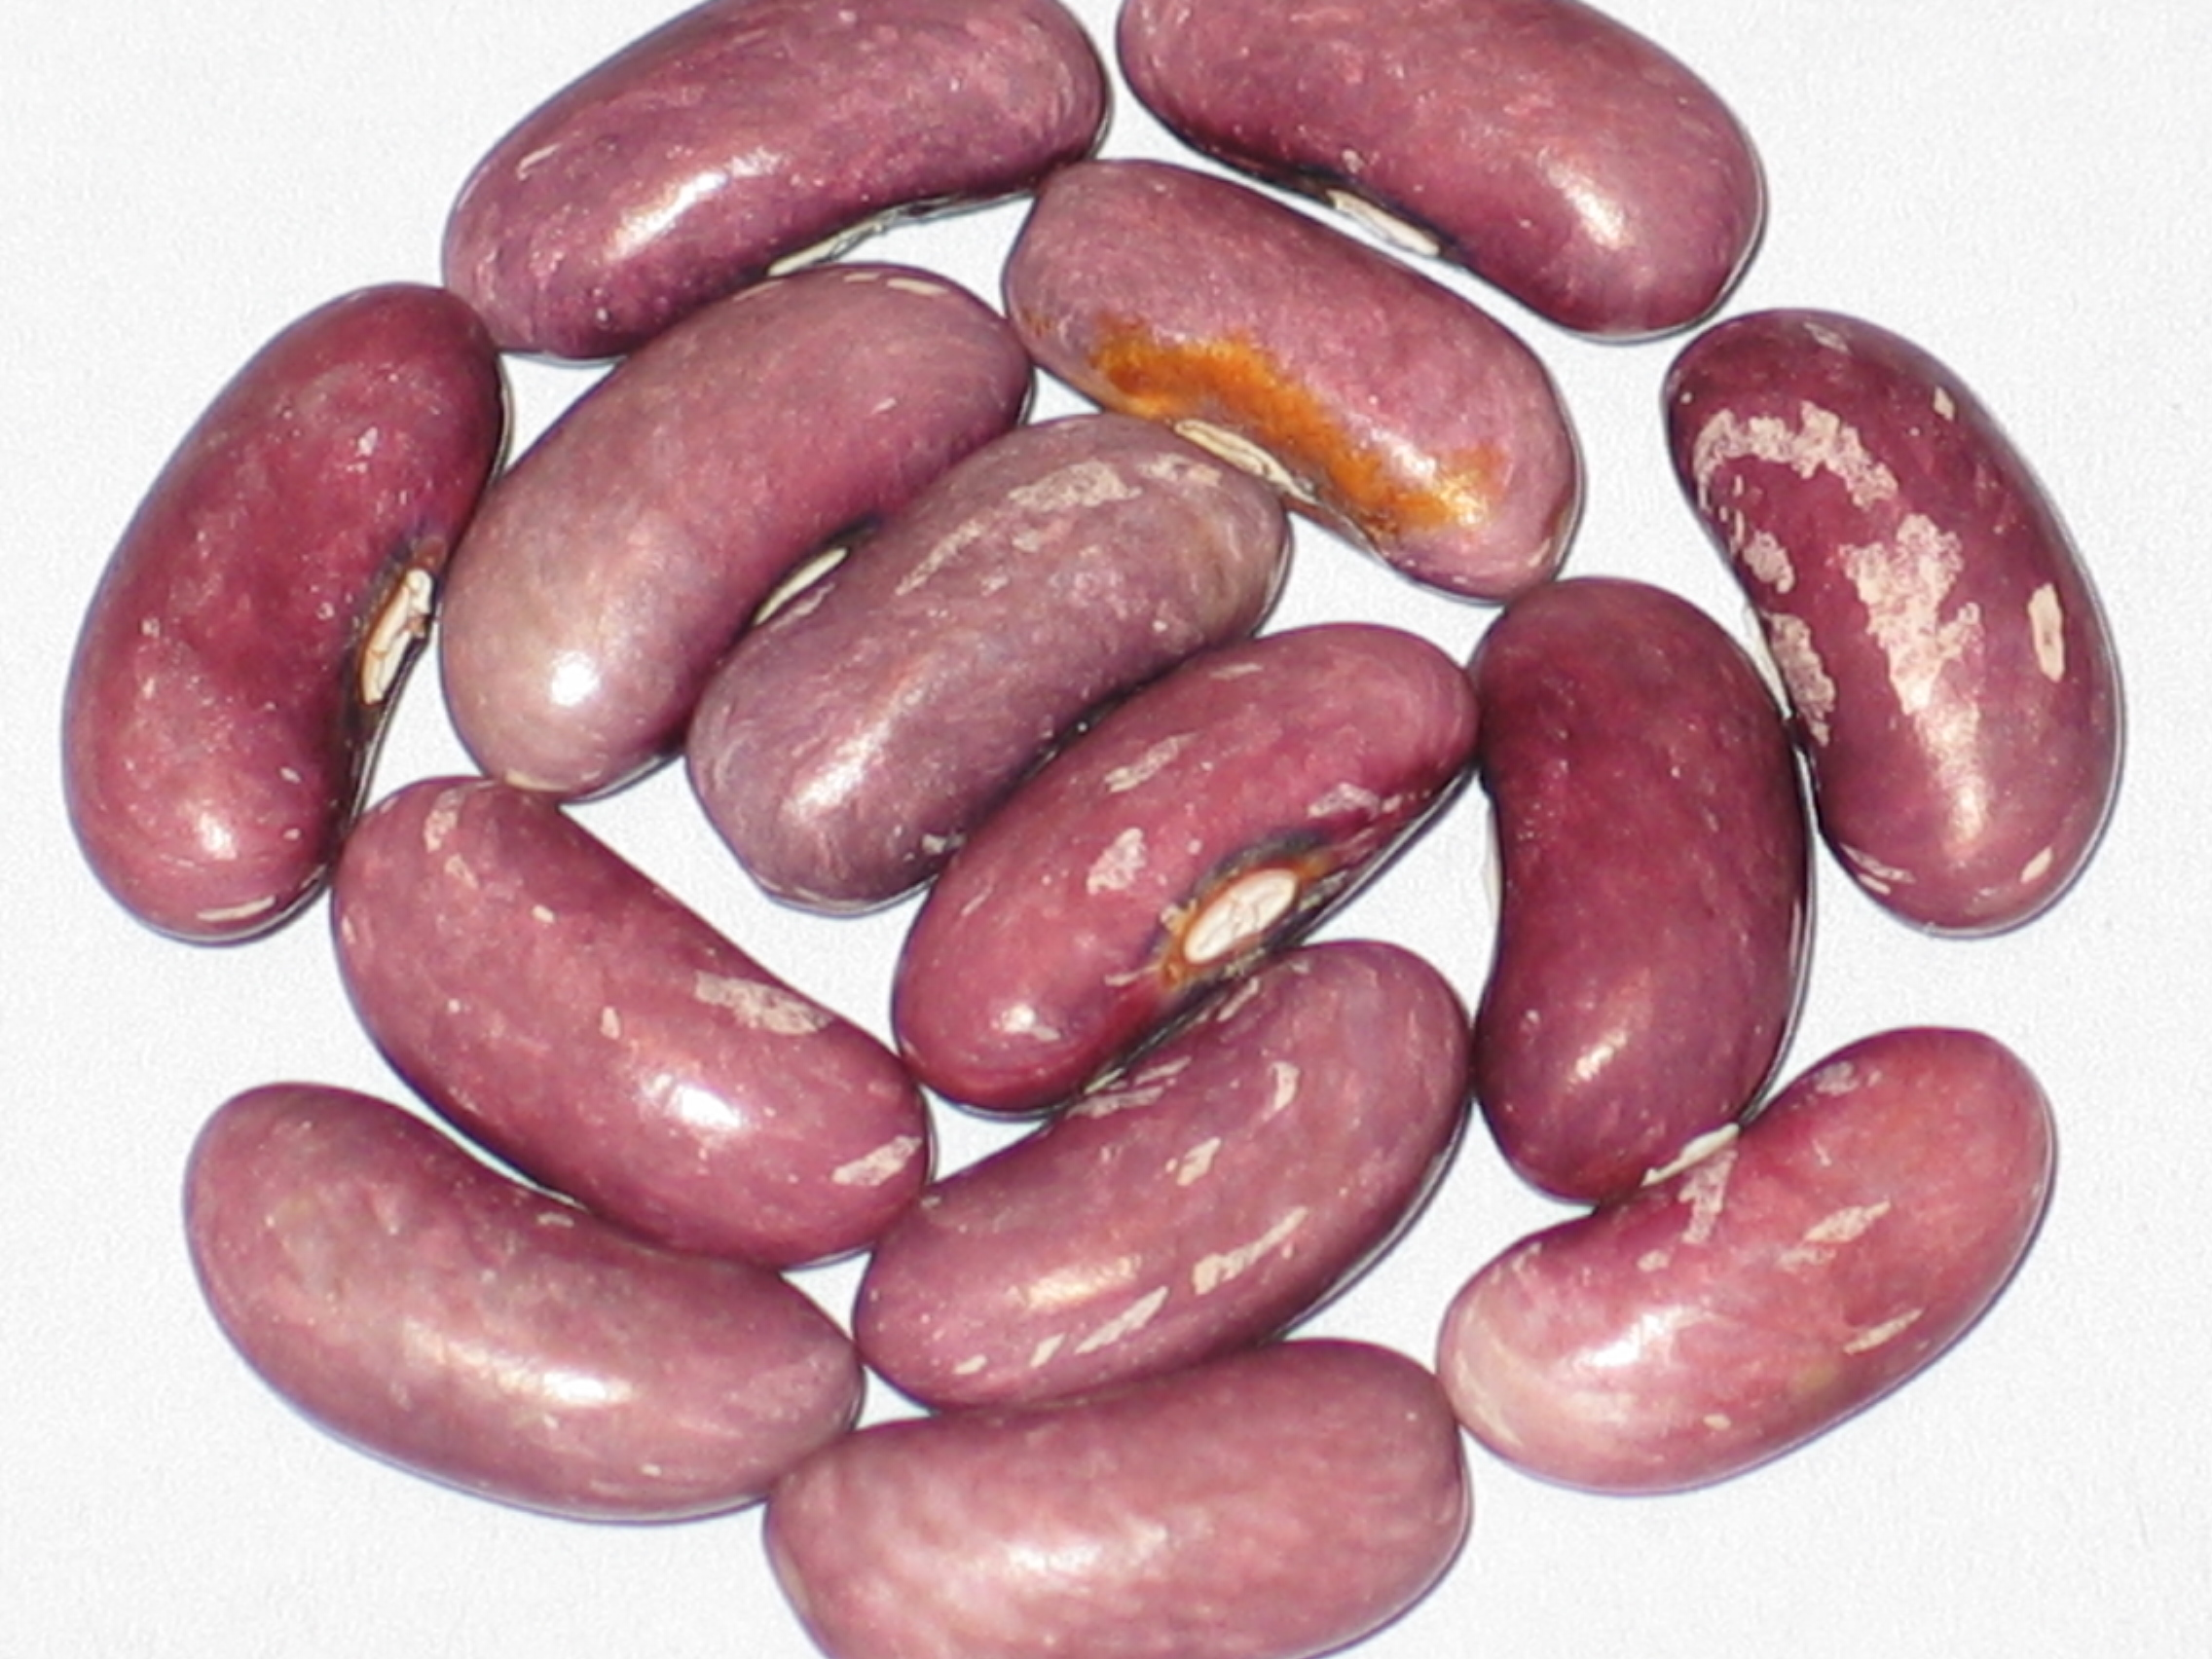 image of Atwater beans